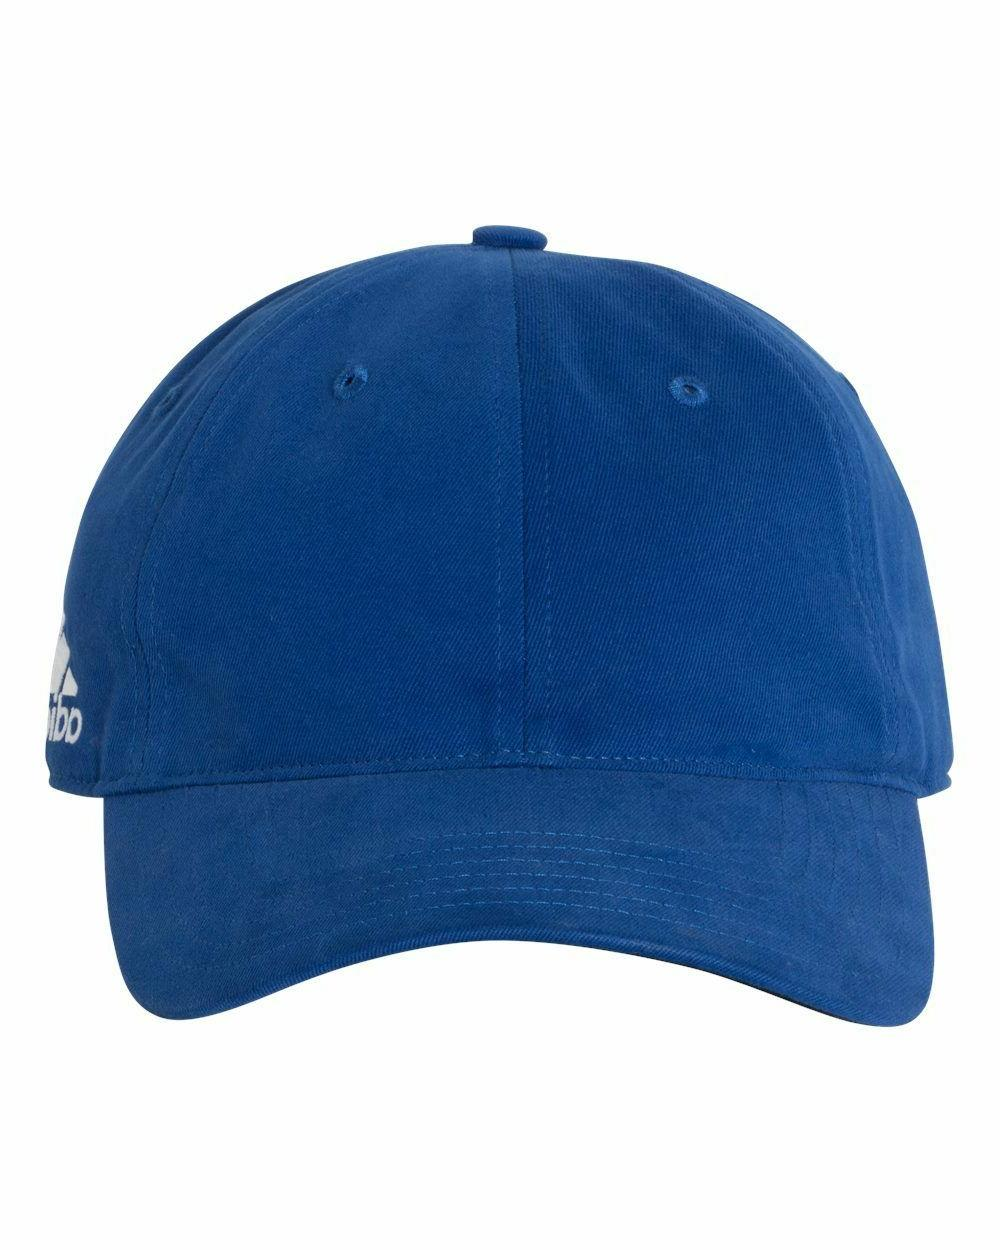 ADIDAS GOLF NEW Mens Cotton Crest Twill Unstructured Ball Hat A12